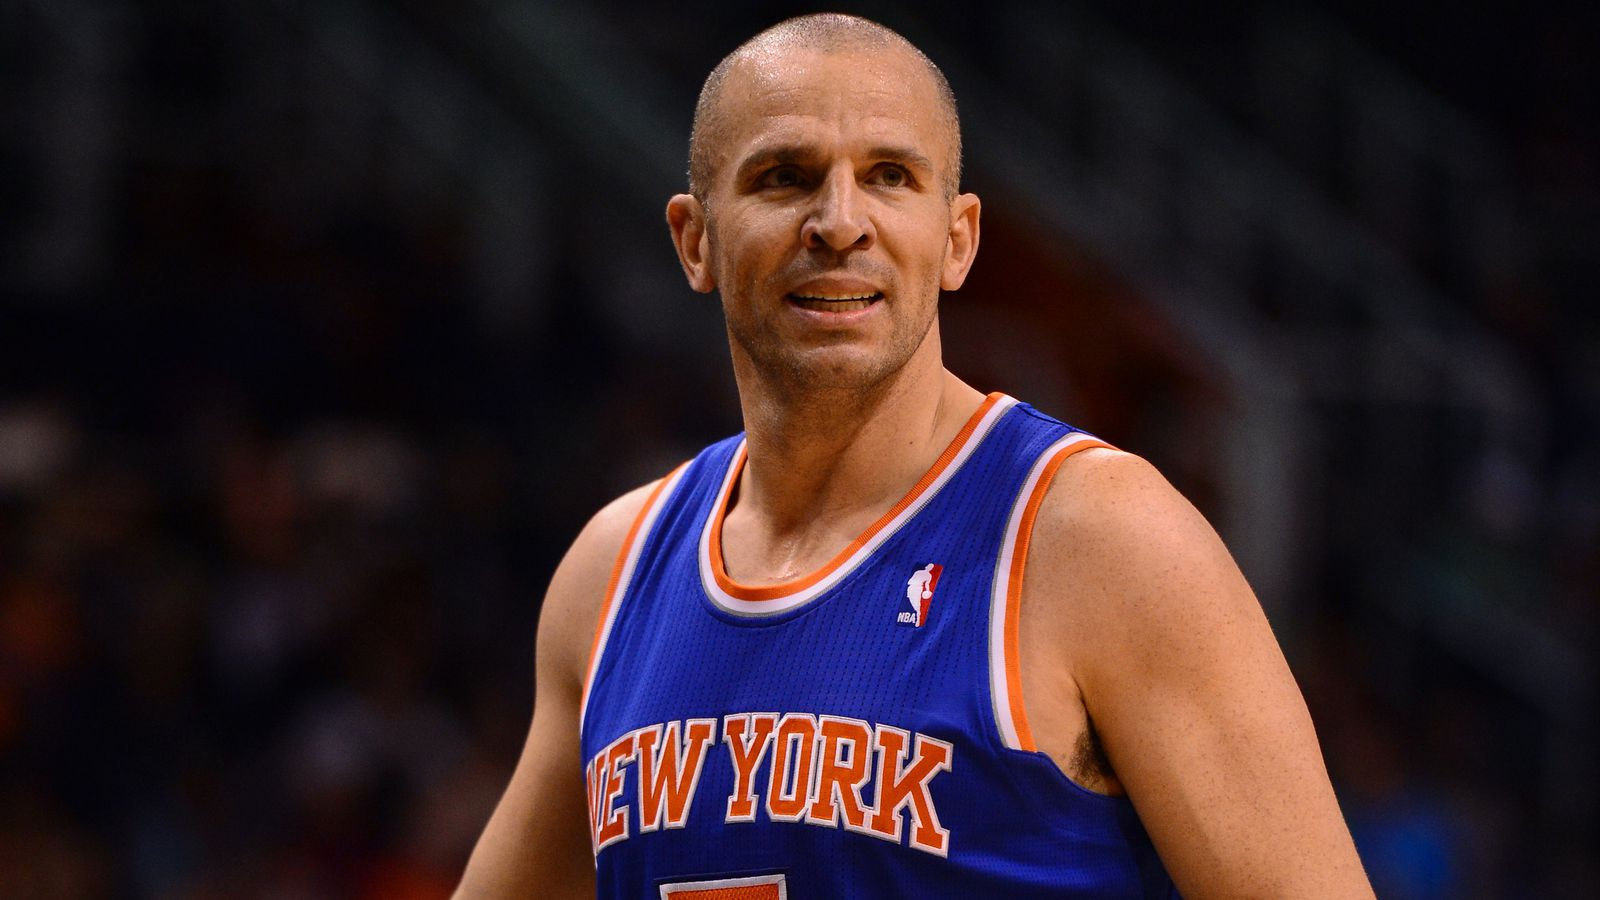 jason kidd adds to rare list of players who jumped